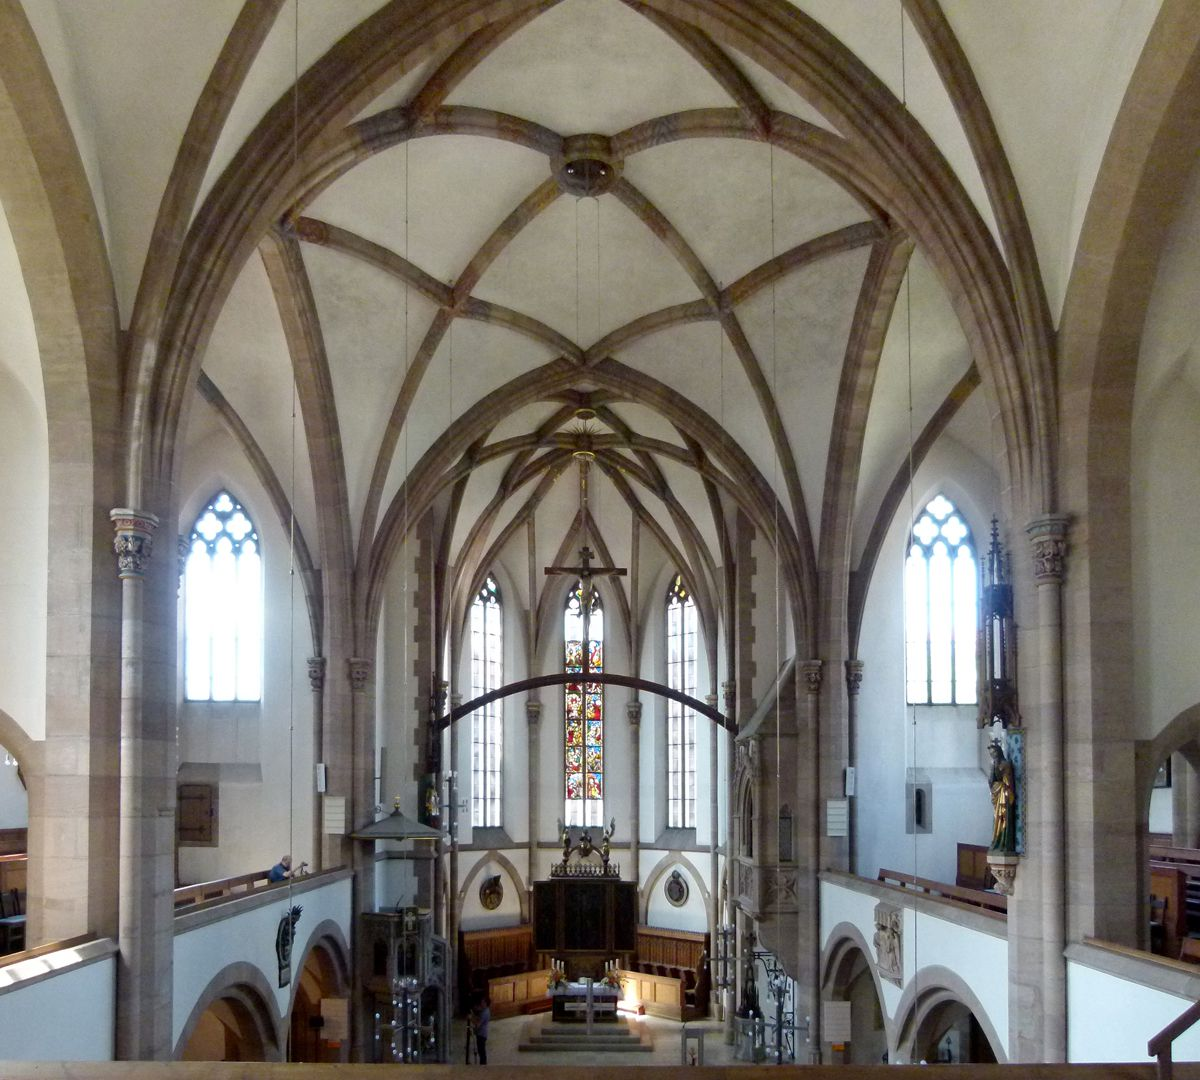 St. Peter Church Interior, view from east to west with vault